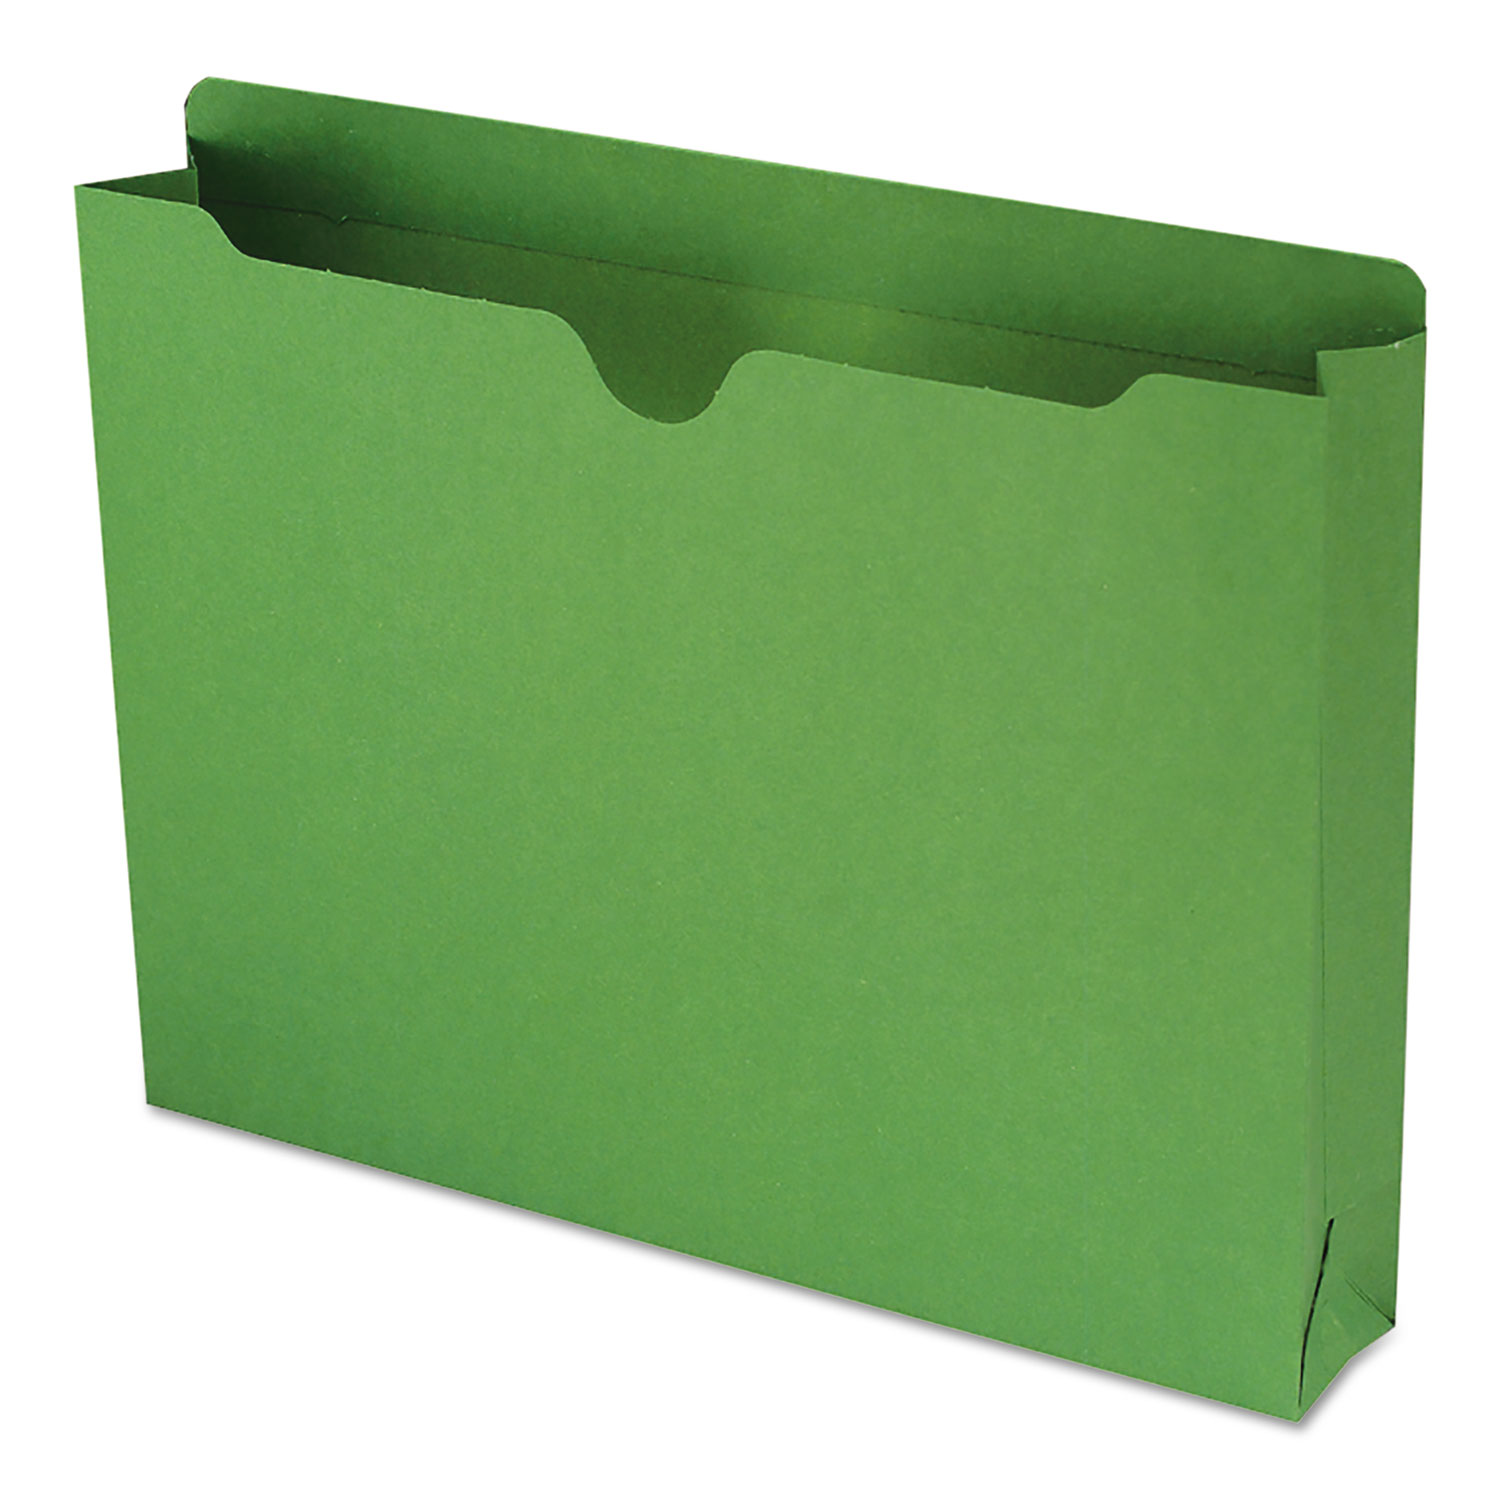 19a1b14c7ab Smead Colored File Jackets w Reinforced 2-Ply Tab, Letter, 11pt, Green,  50 Box